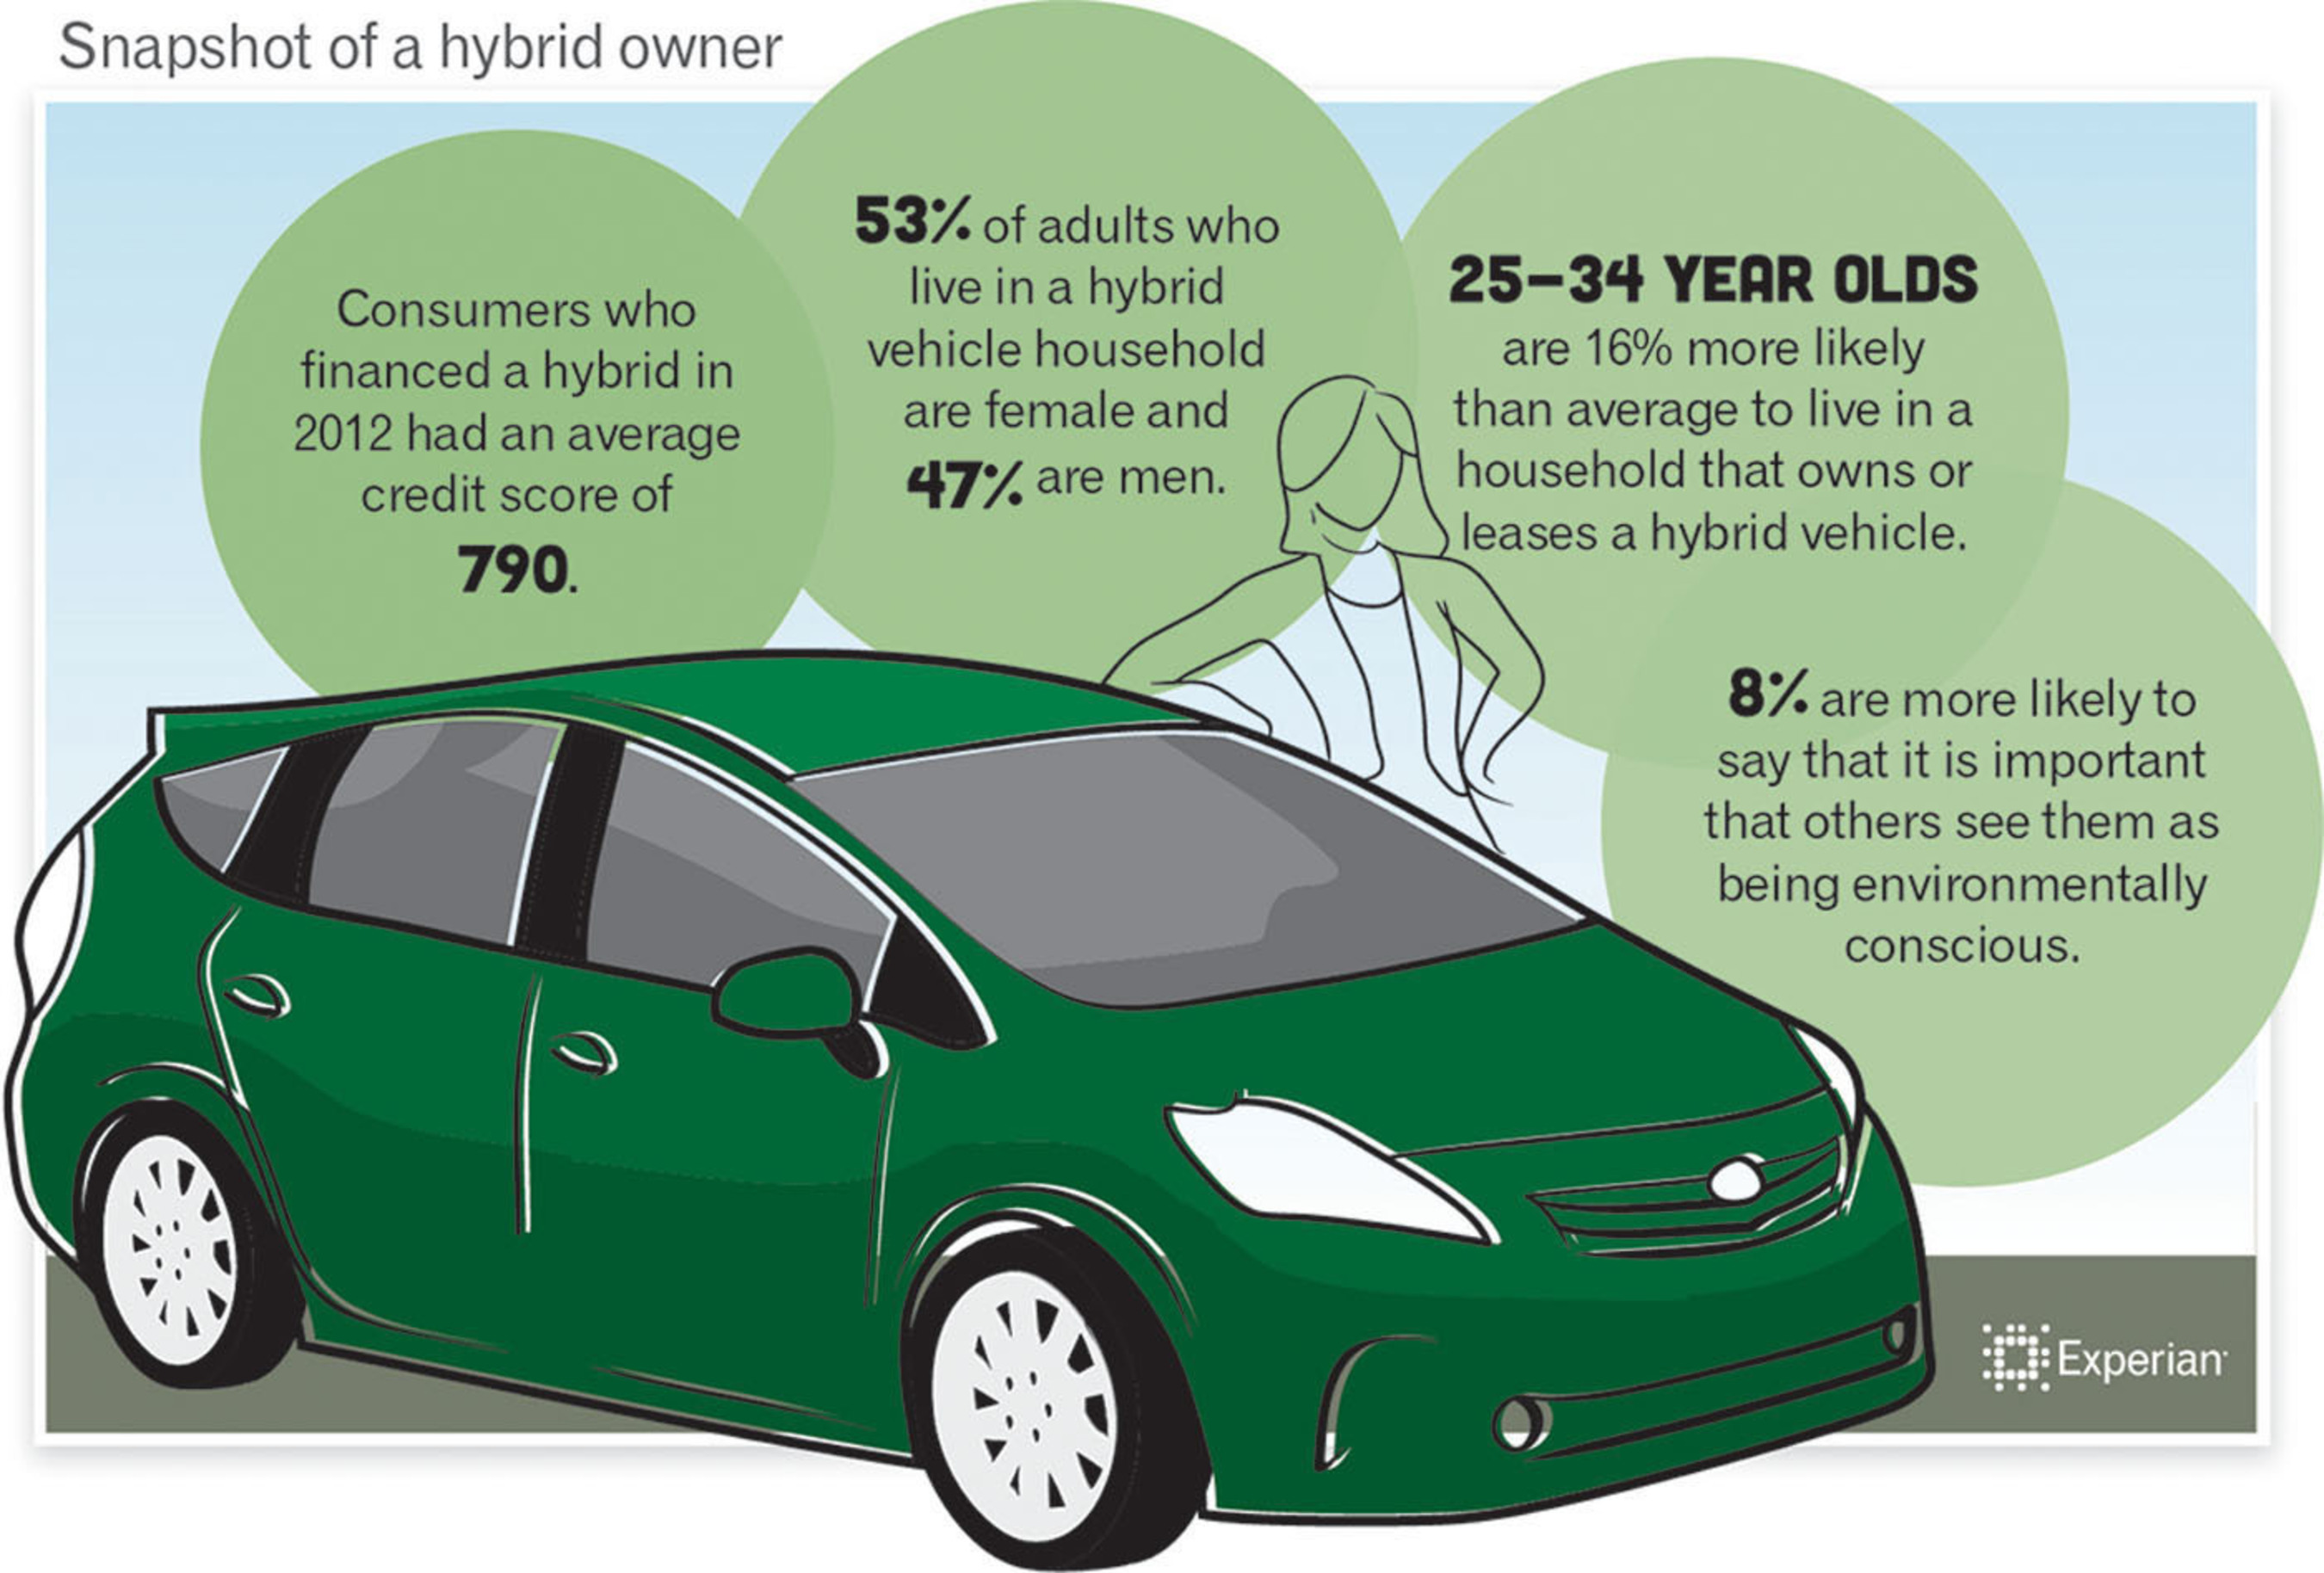 Snapshot of a typical hybrid owner.  (PRNewsFoto/Experian Automotive)